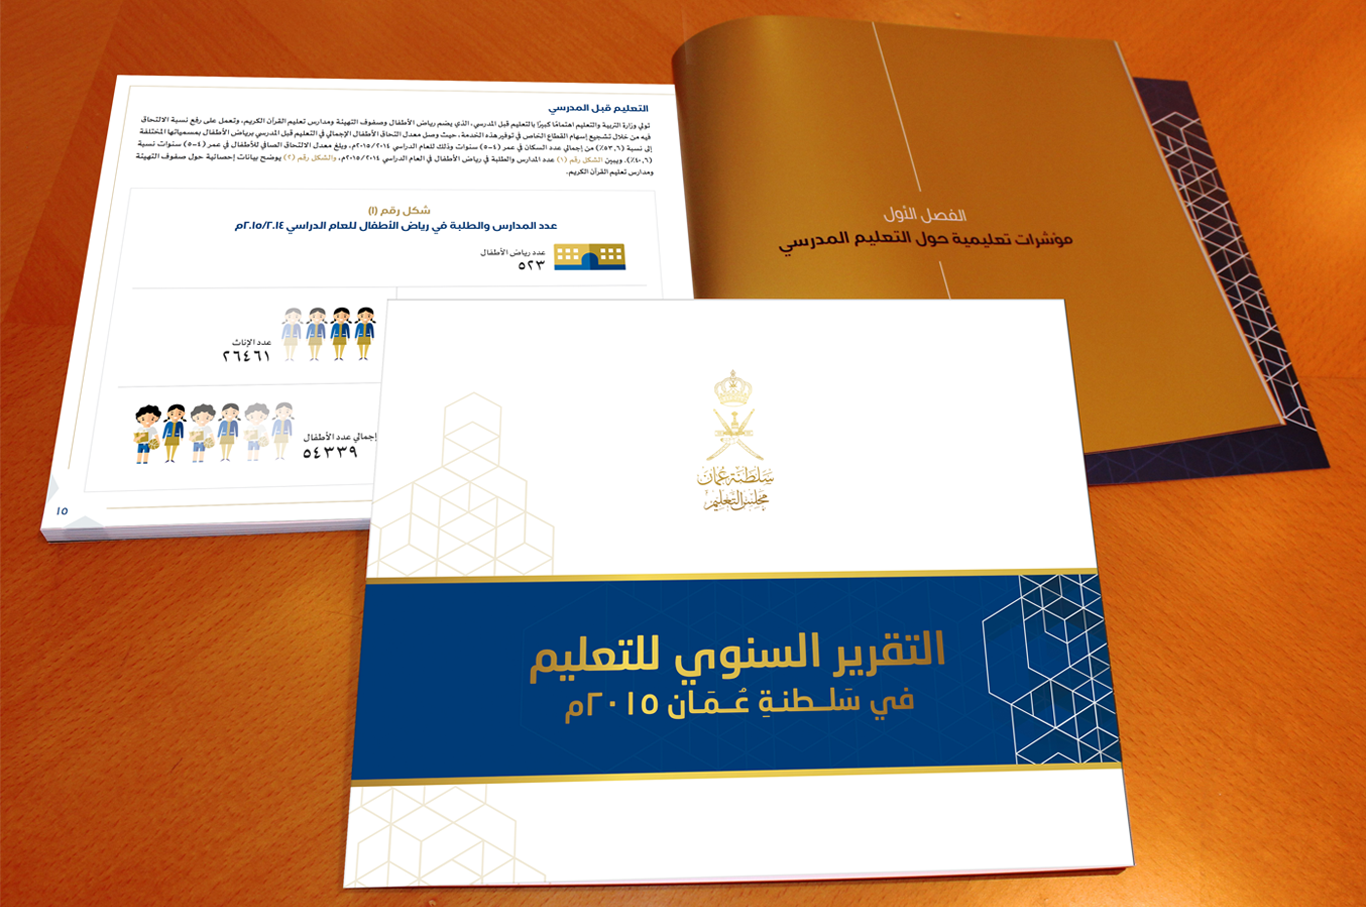 The Education Council issued its Annual Report on Education in the Sultanate of Oman 2015